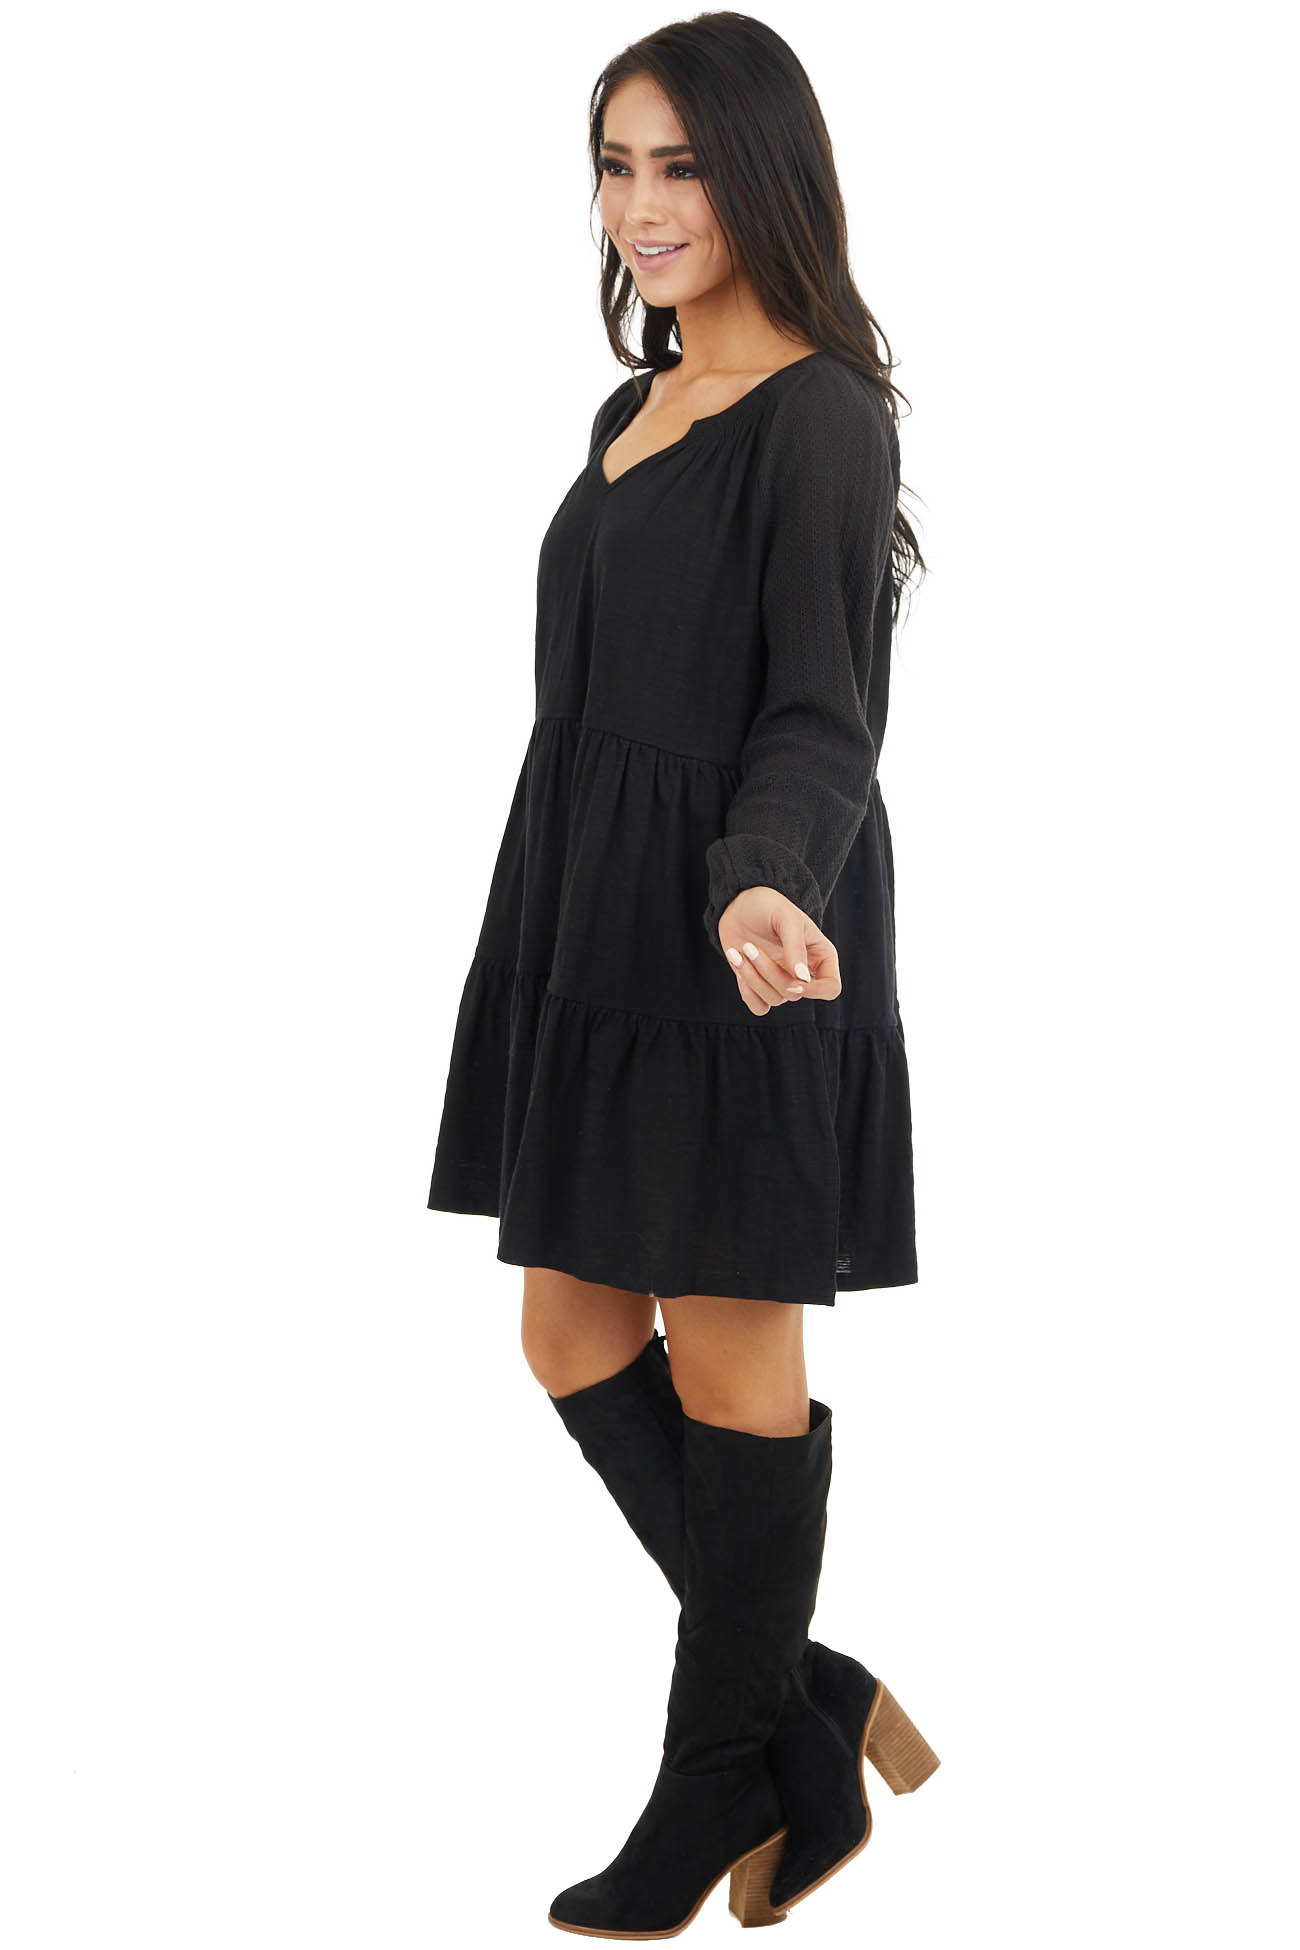 Black Tiered Mini Dress with Crochet Sleeves and V Neckline